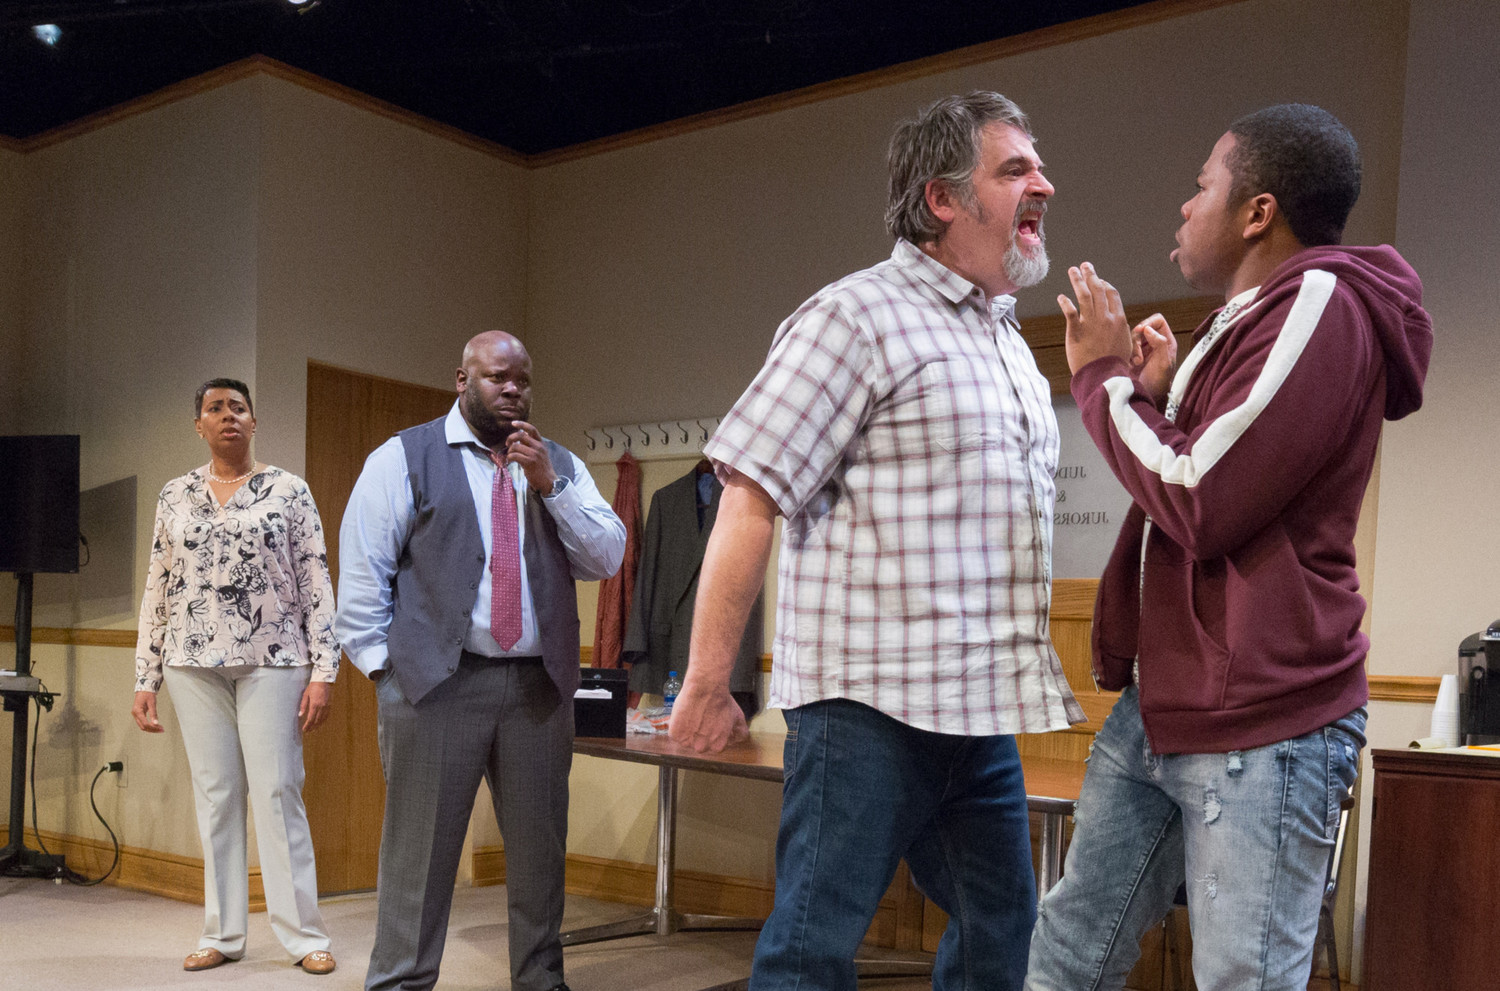 BWW Review: 74 SECONDS... TO JUDGEMENT at Arden Theatre Co.